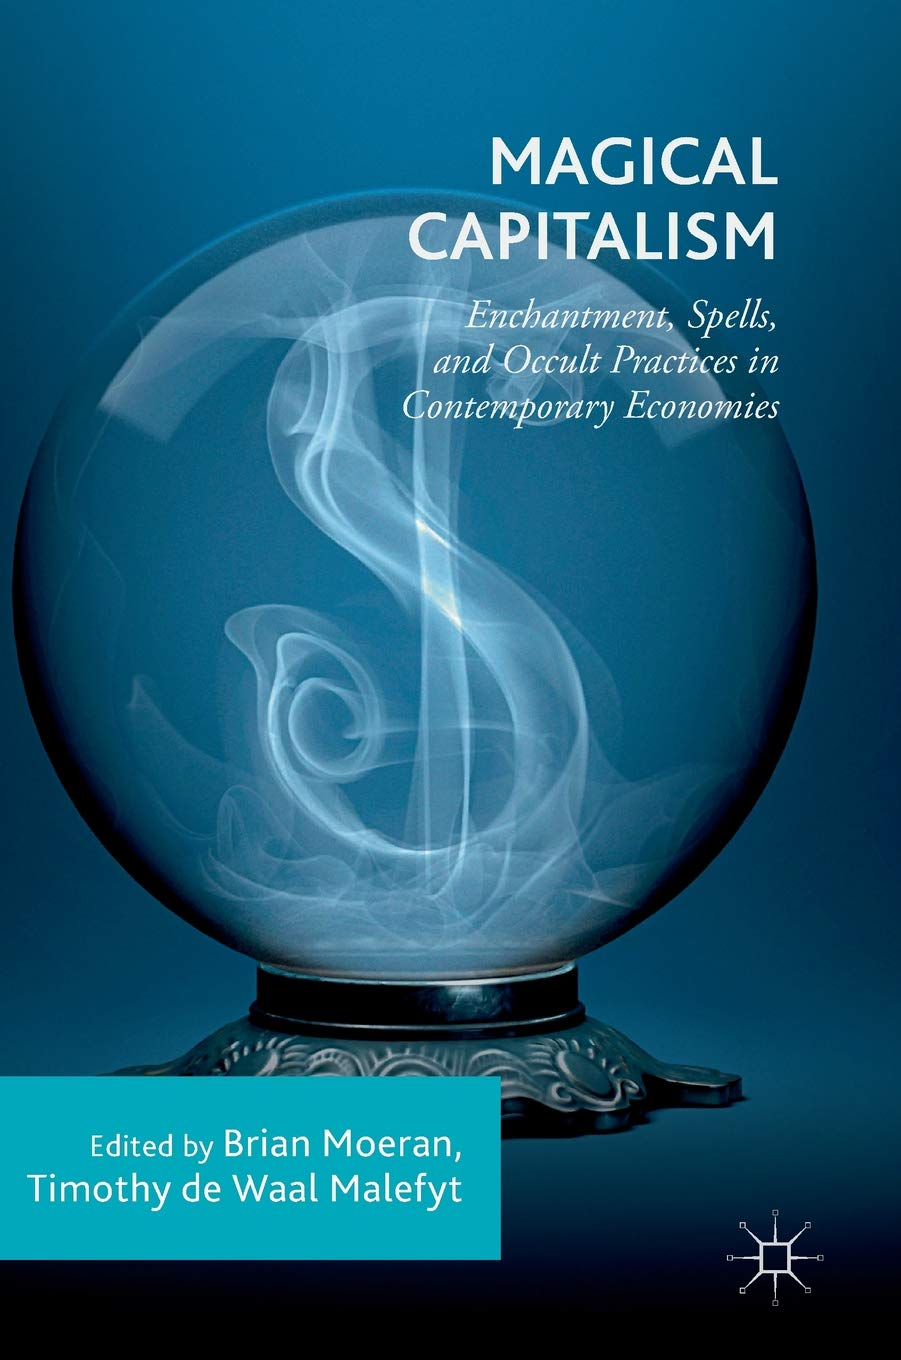 Magical Capitalism: Enchantment, Spells, and Occult Practices in Contemporary Economies by Palgrave Macmillan